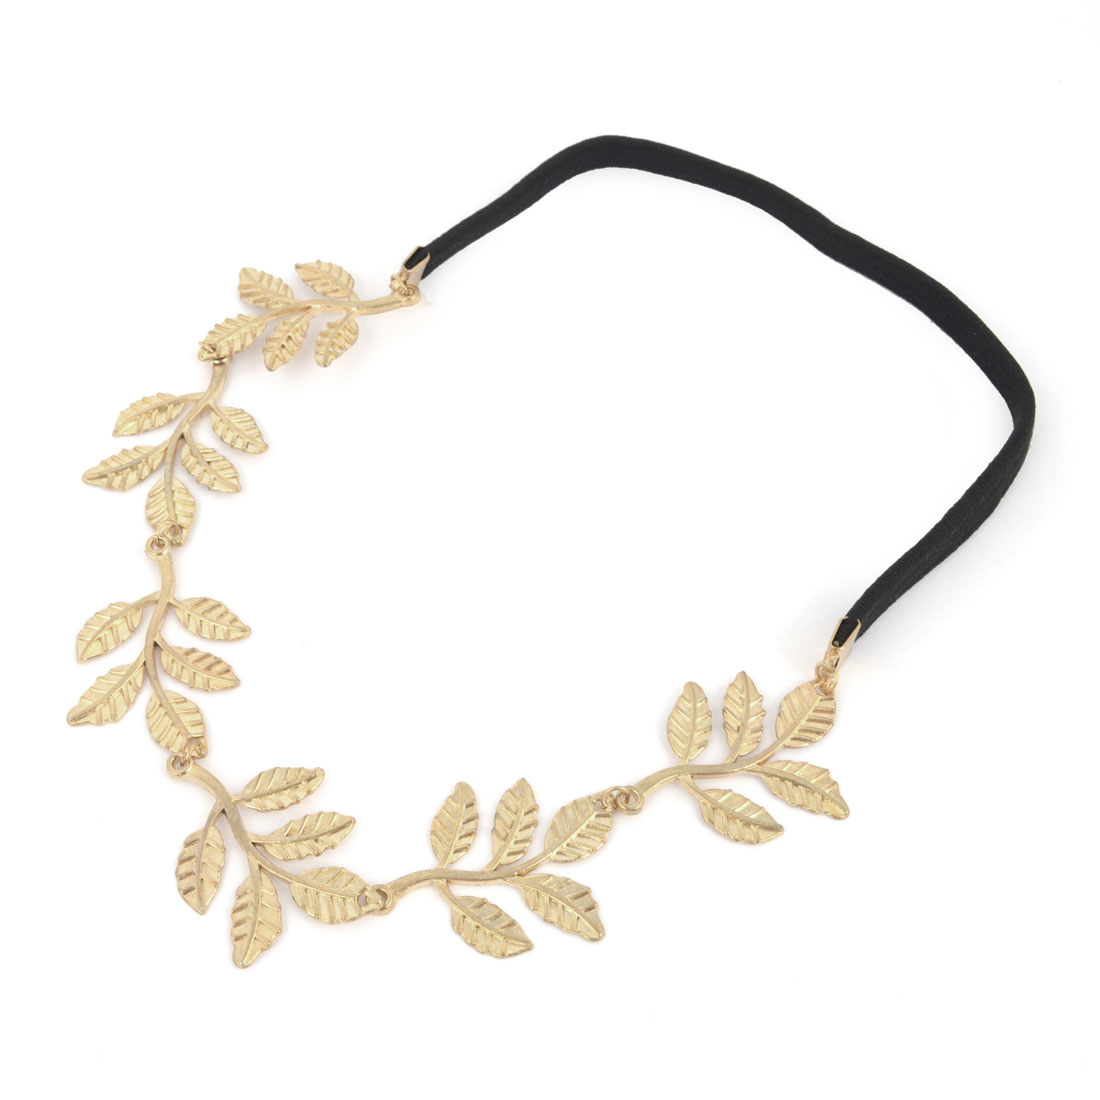 Women Gold Tone Metal Leaves Design Elastic Headband Headwrap Black